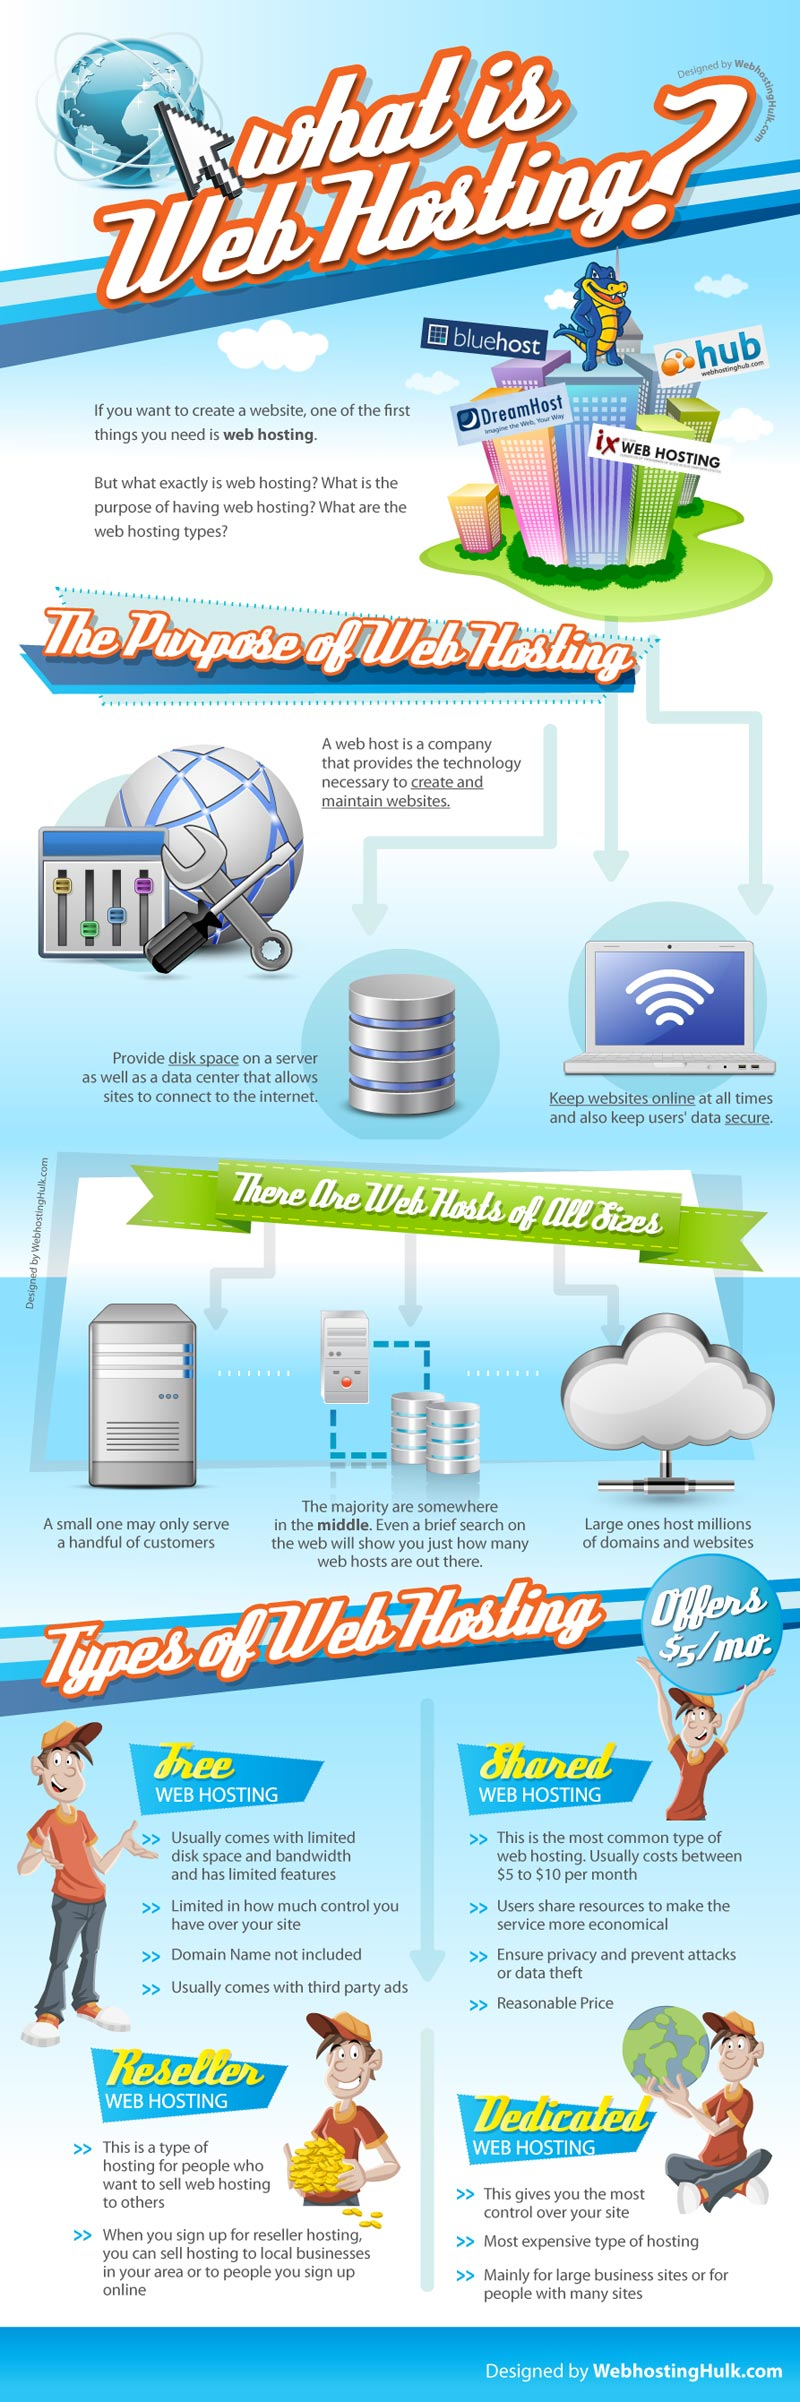 What Is Web Hosting? - Infographic